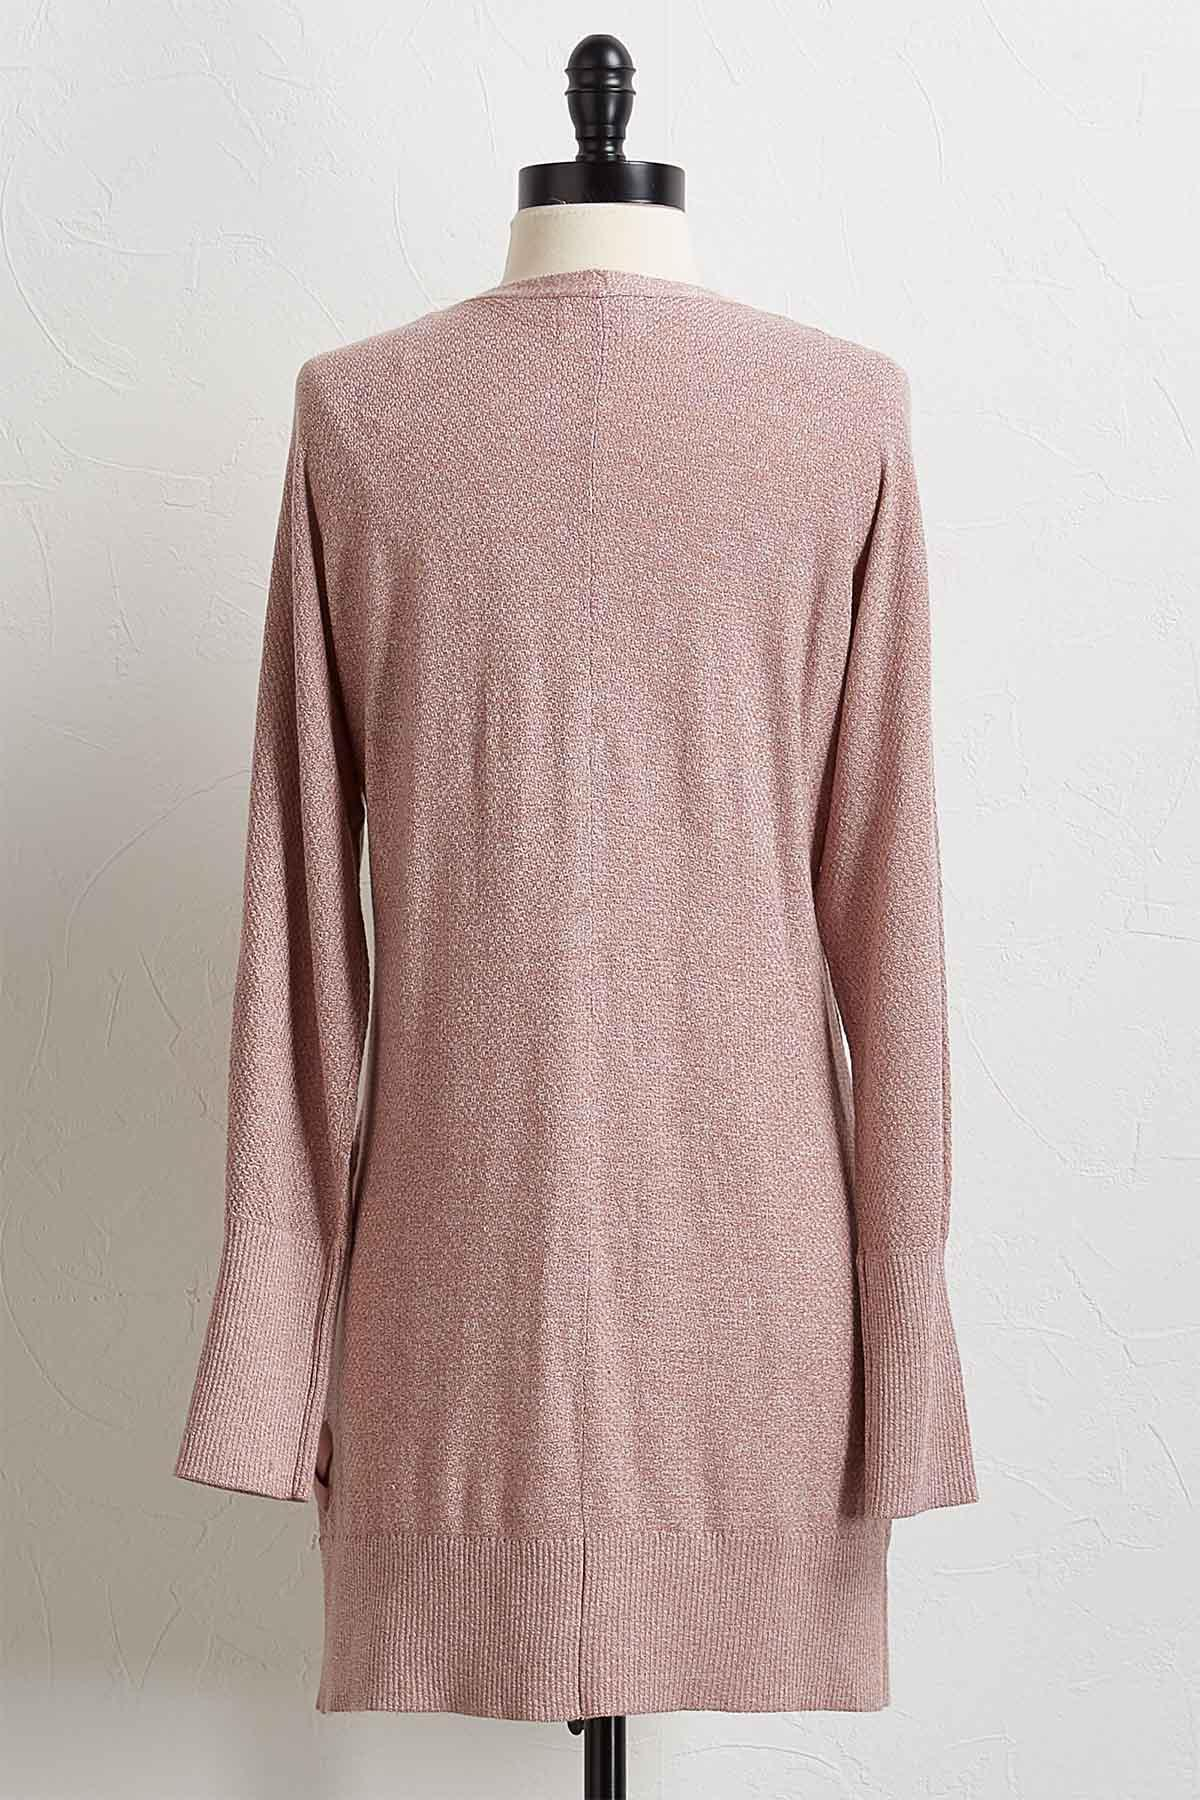 Rose Lace Up Cardigan Sweater